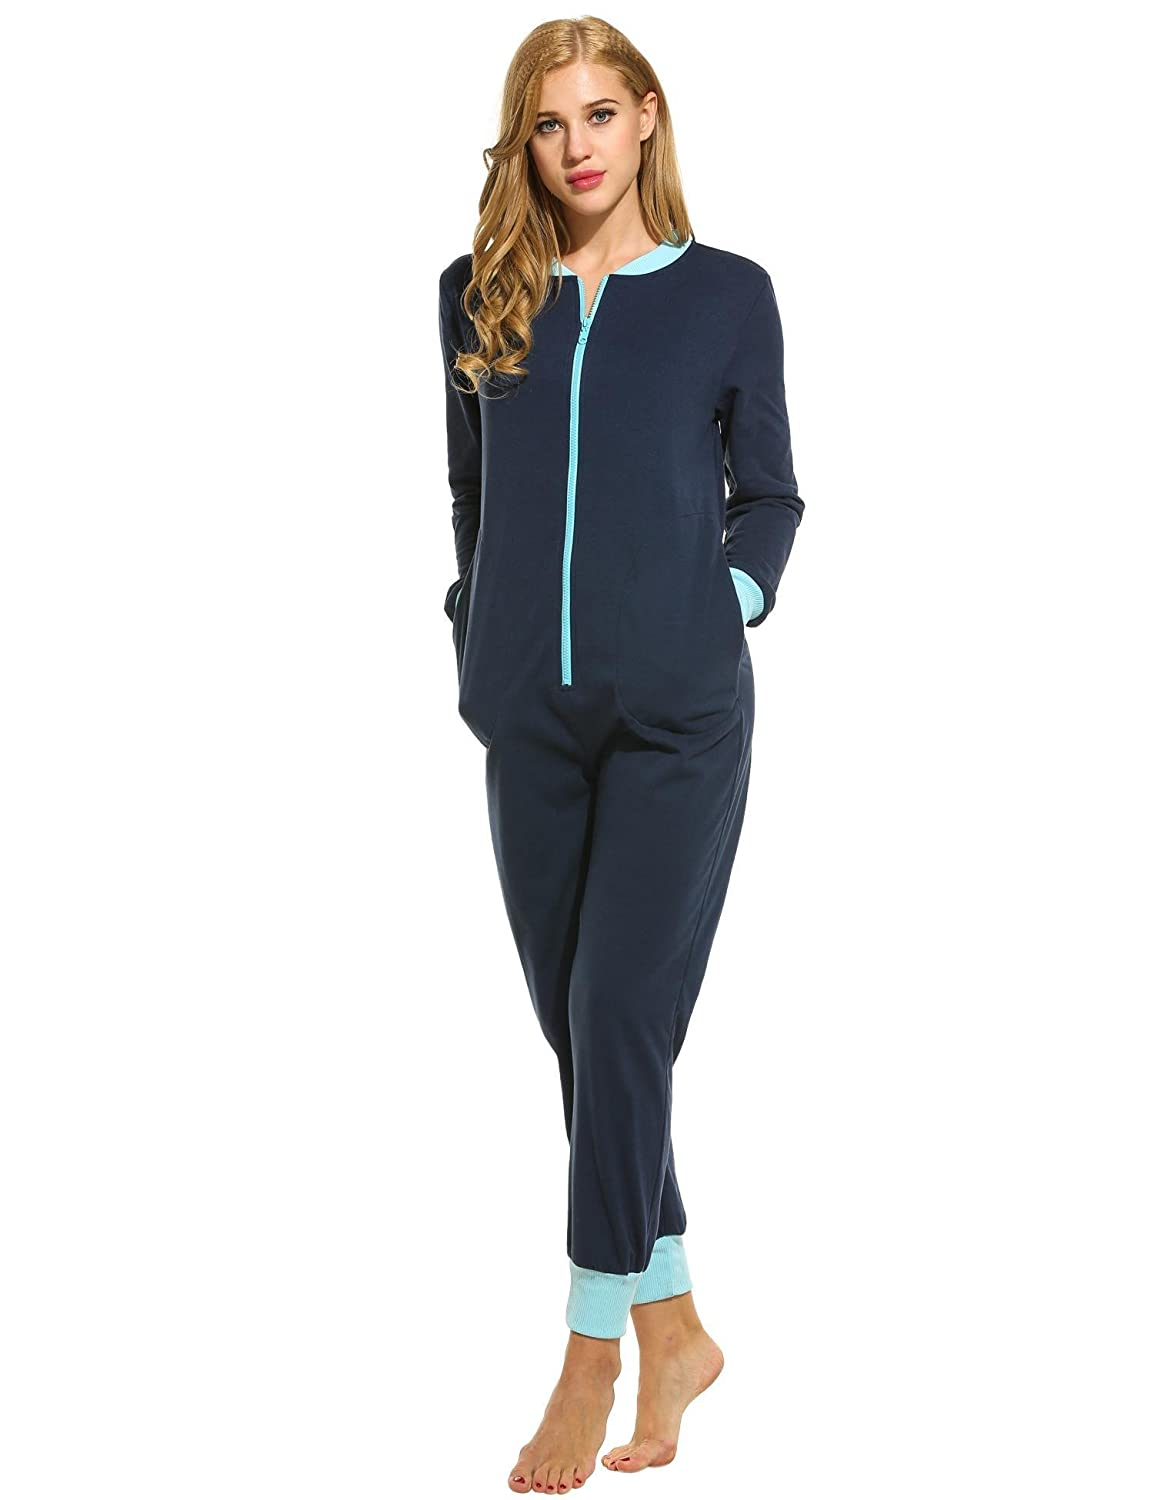 970d1247bbb1 Hufcor Women s Onesie Jumpsuit Non Footed Sleepwear Front Zipper and Side  Pockets Pajamas